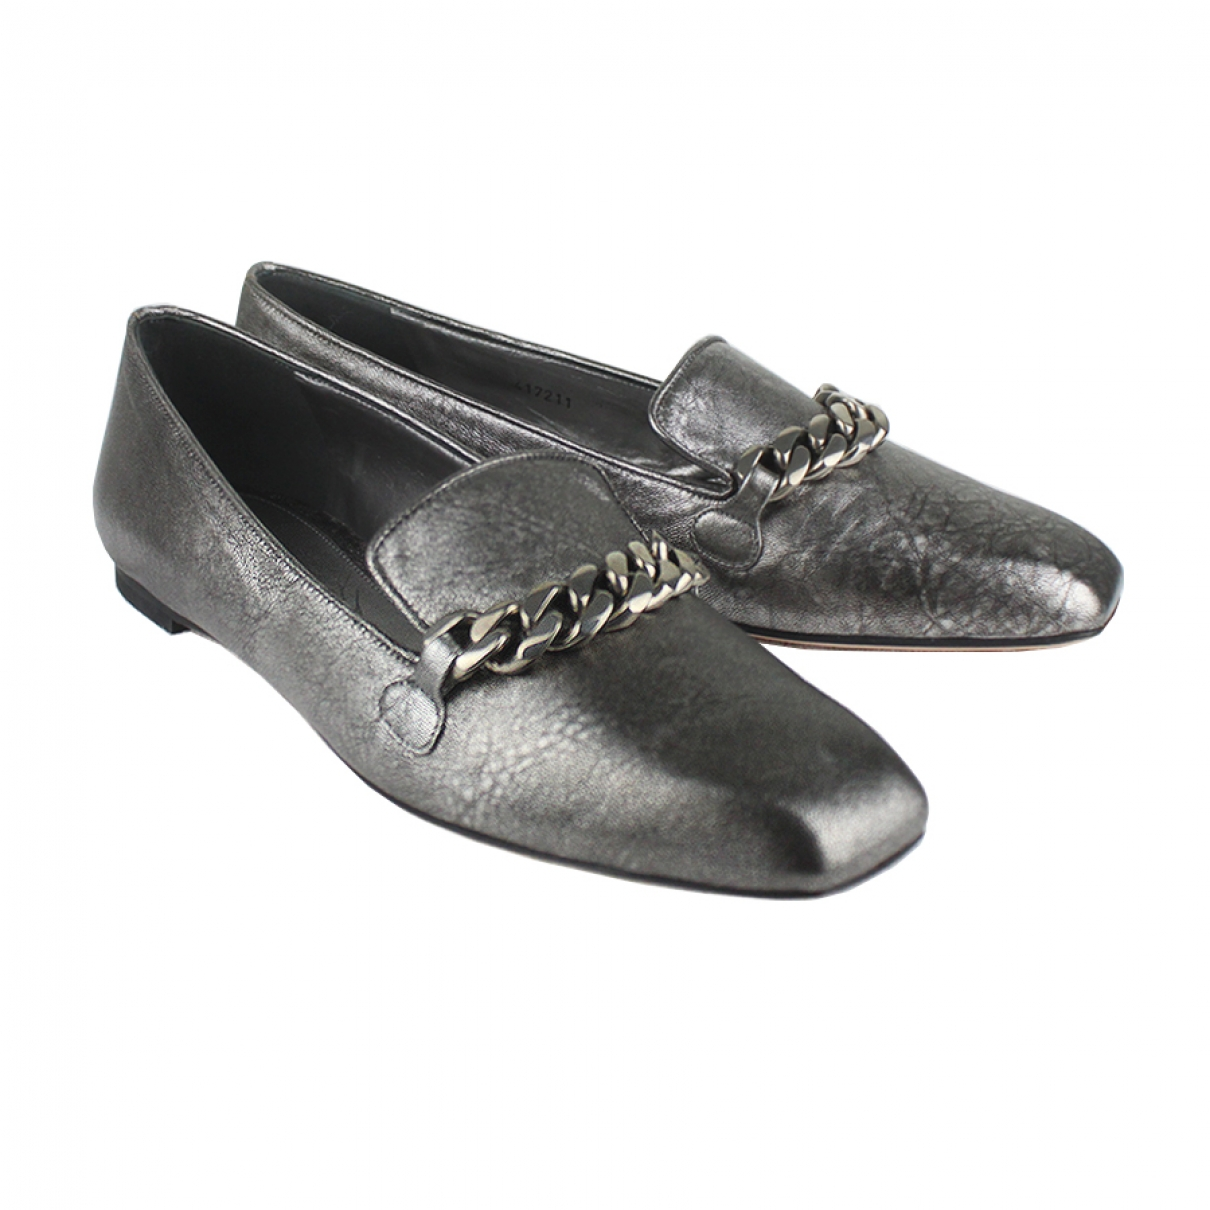 Alexander Mcqueen \N Silver Leather Flats for Women 36 IT